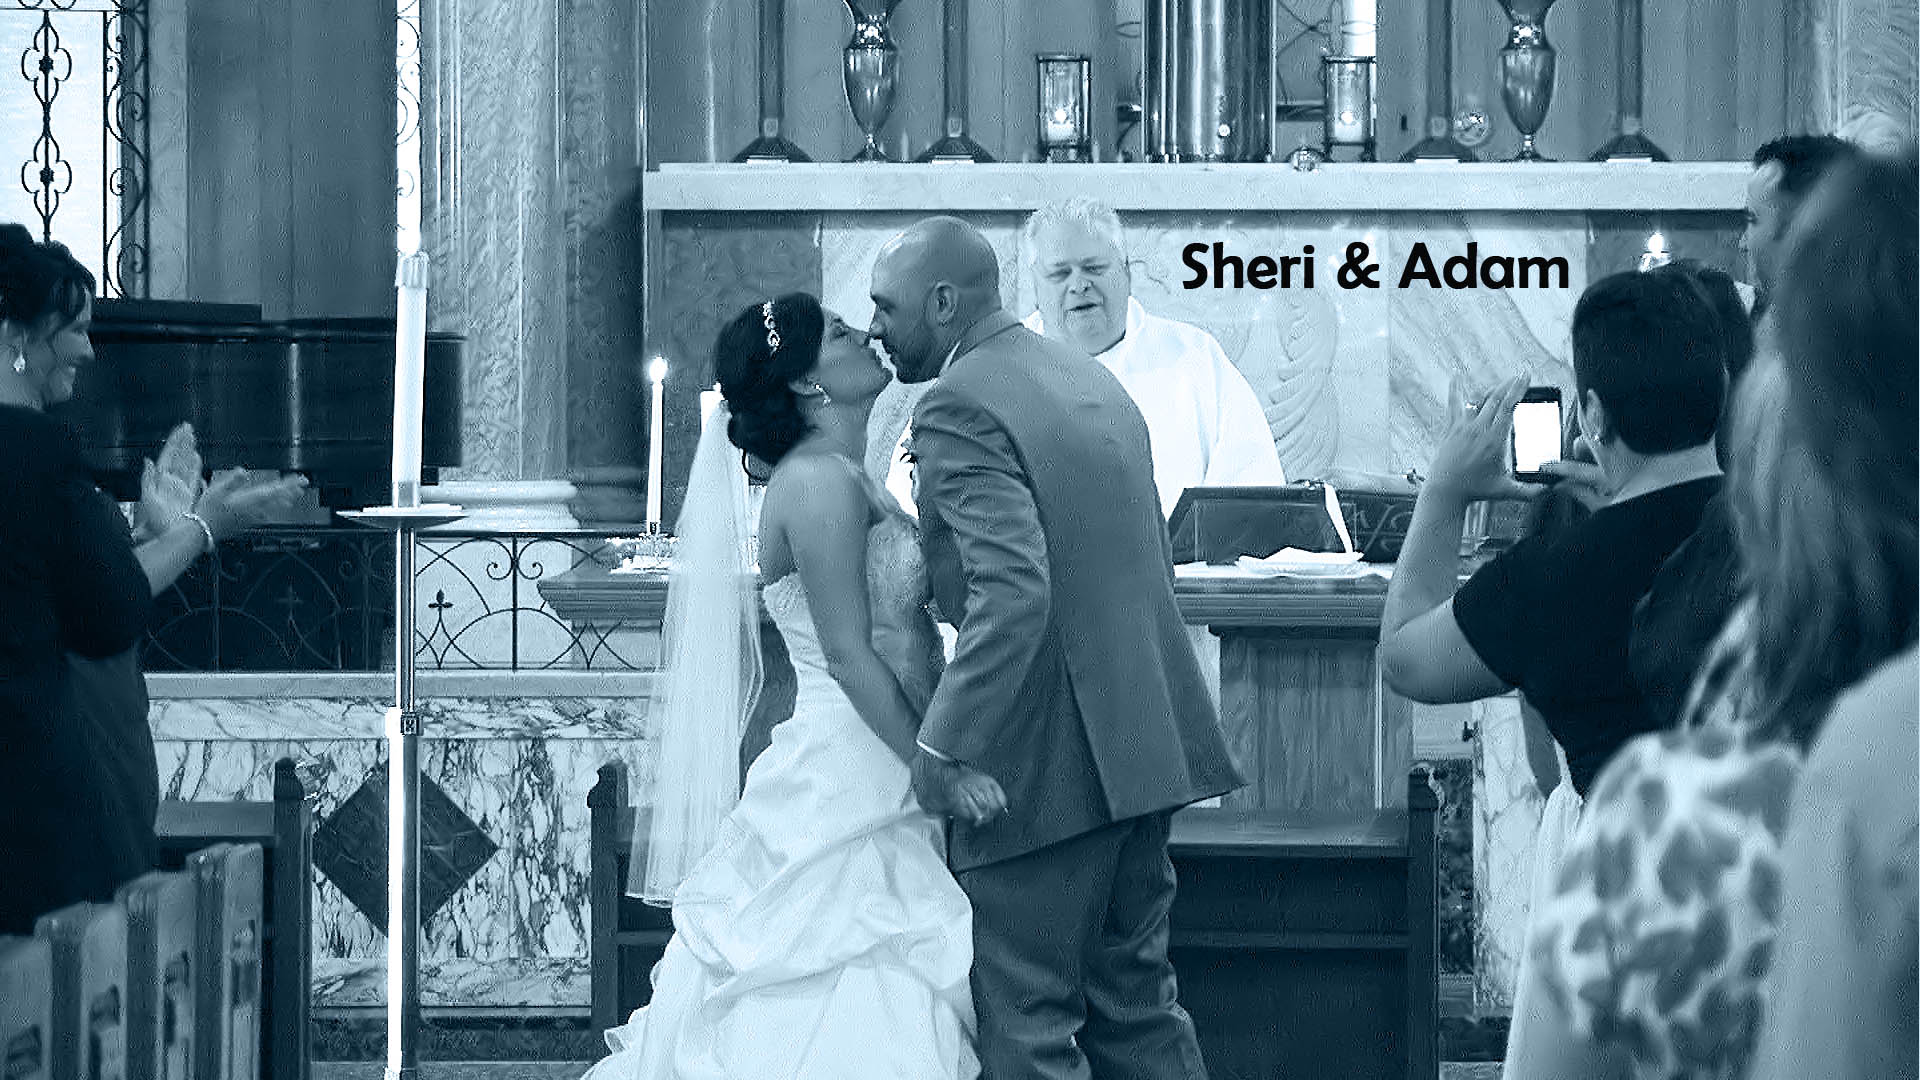 Sheri & Adam – Buffalo Wedding Video